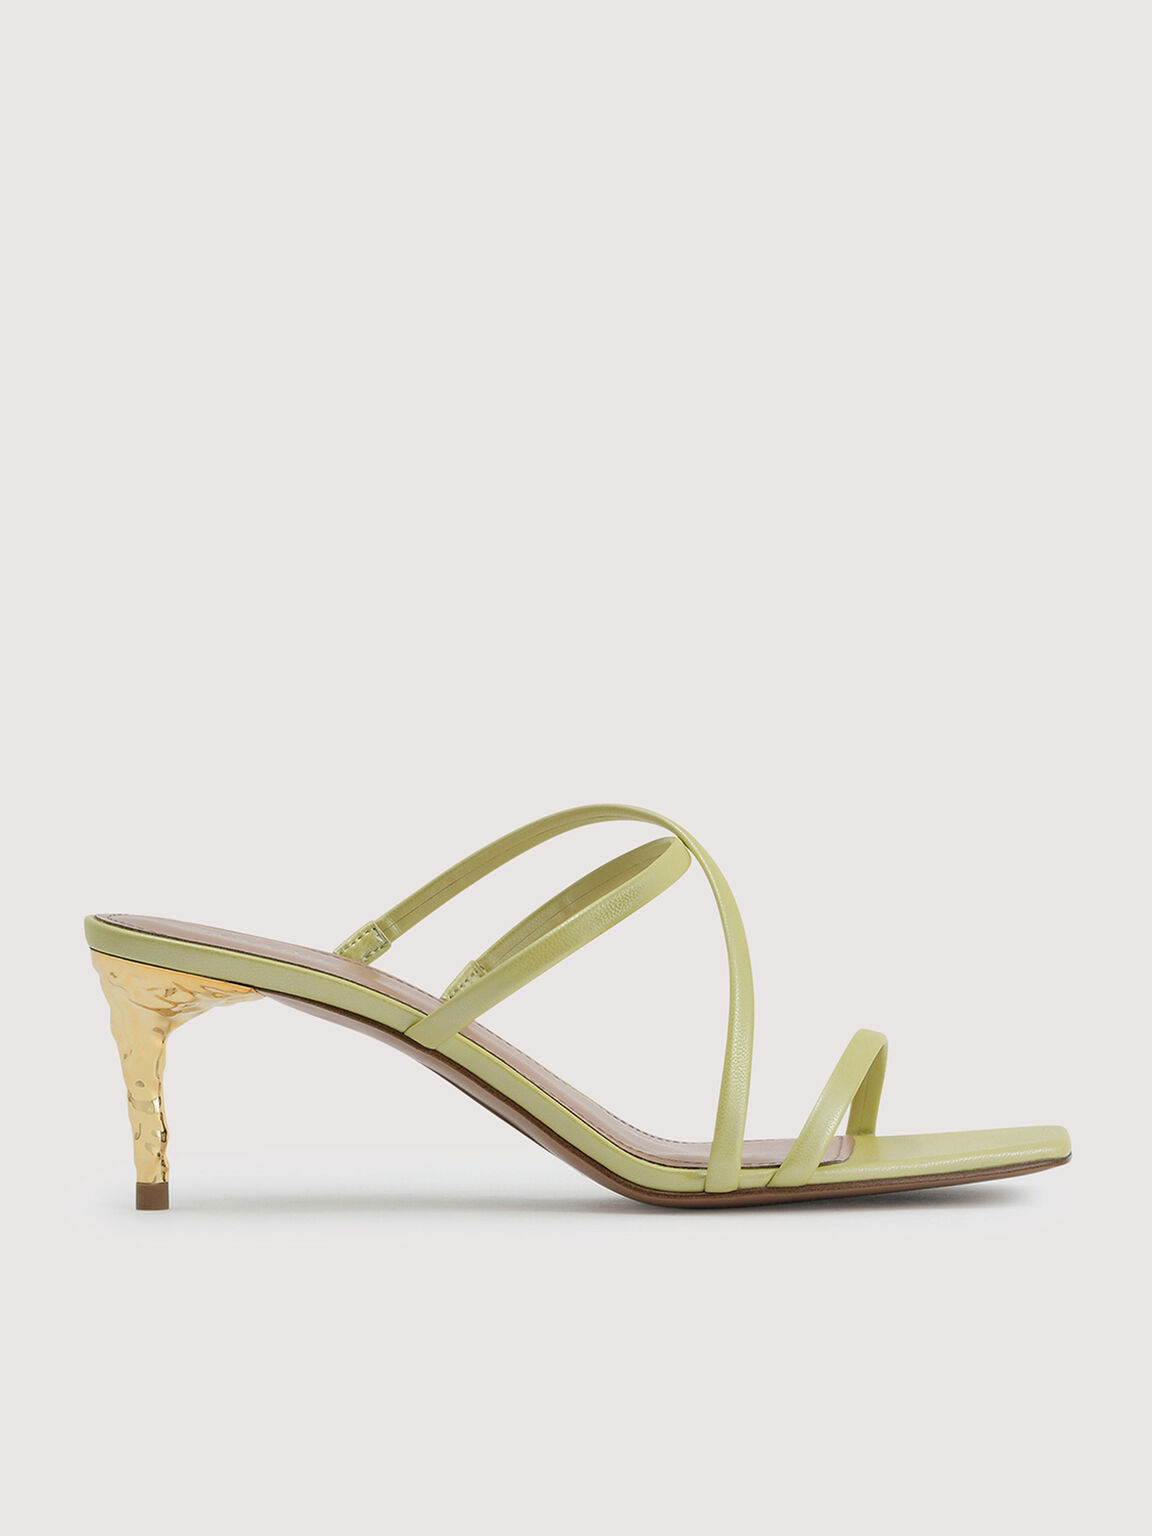 Pearlised Strappy Heel Sandals, Light Green, hi-res